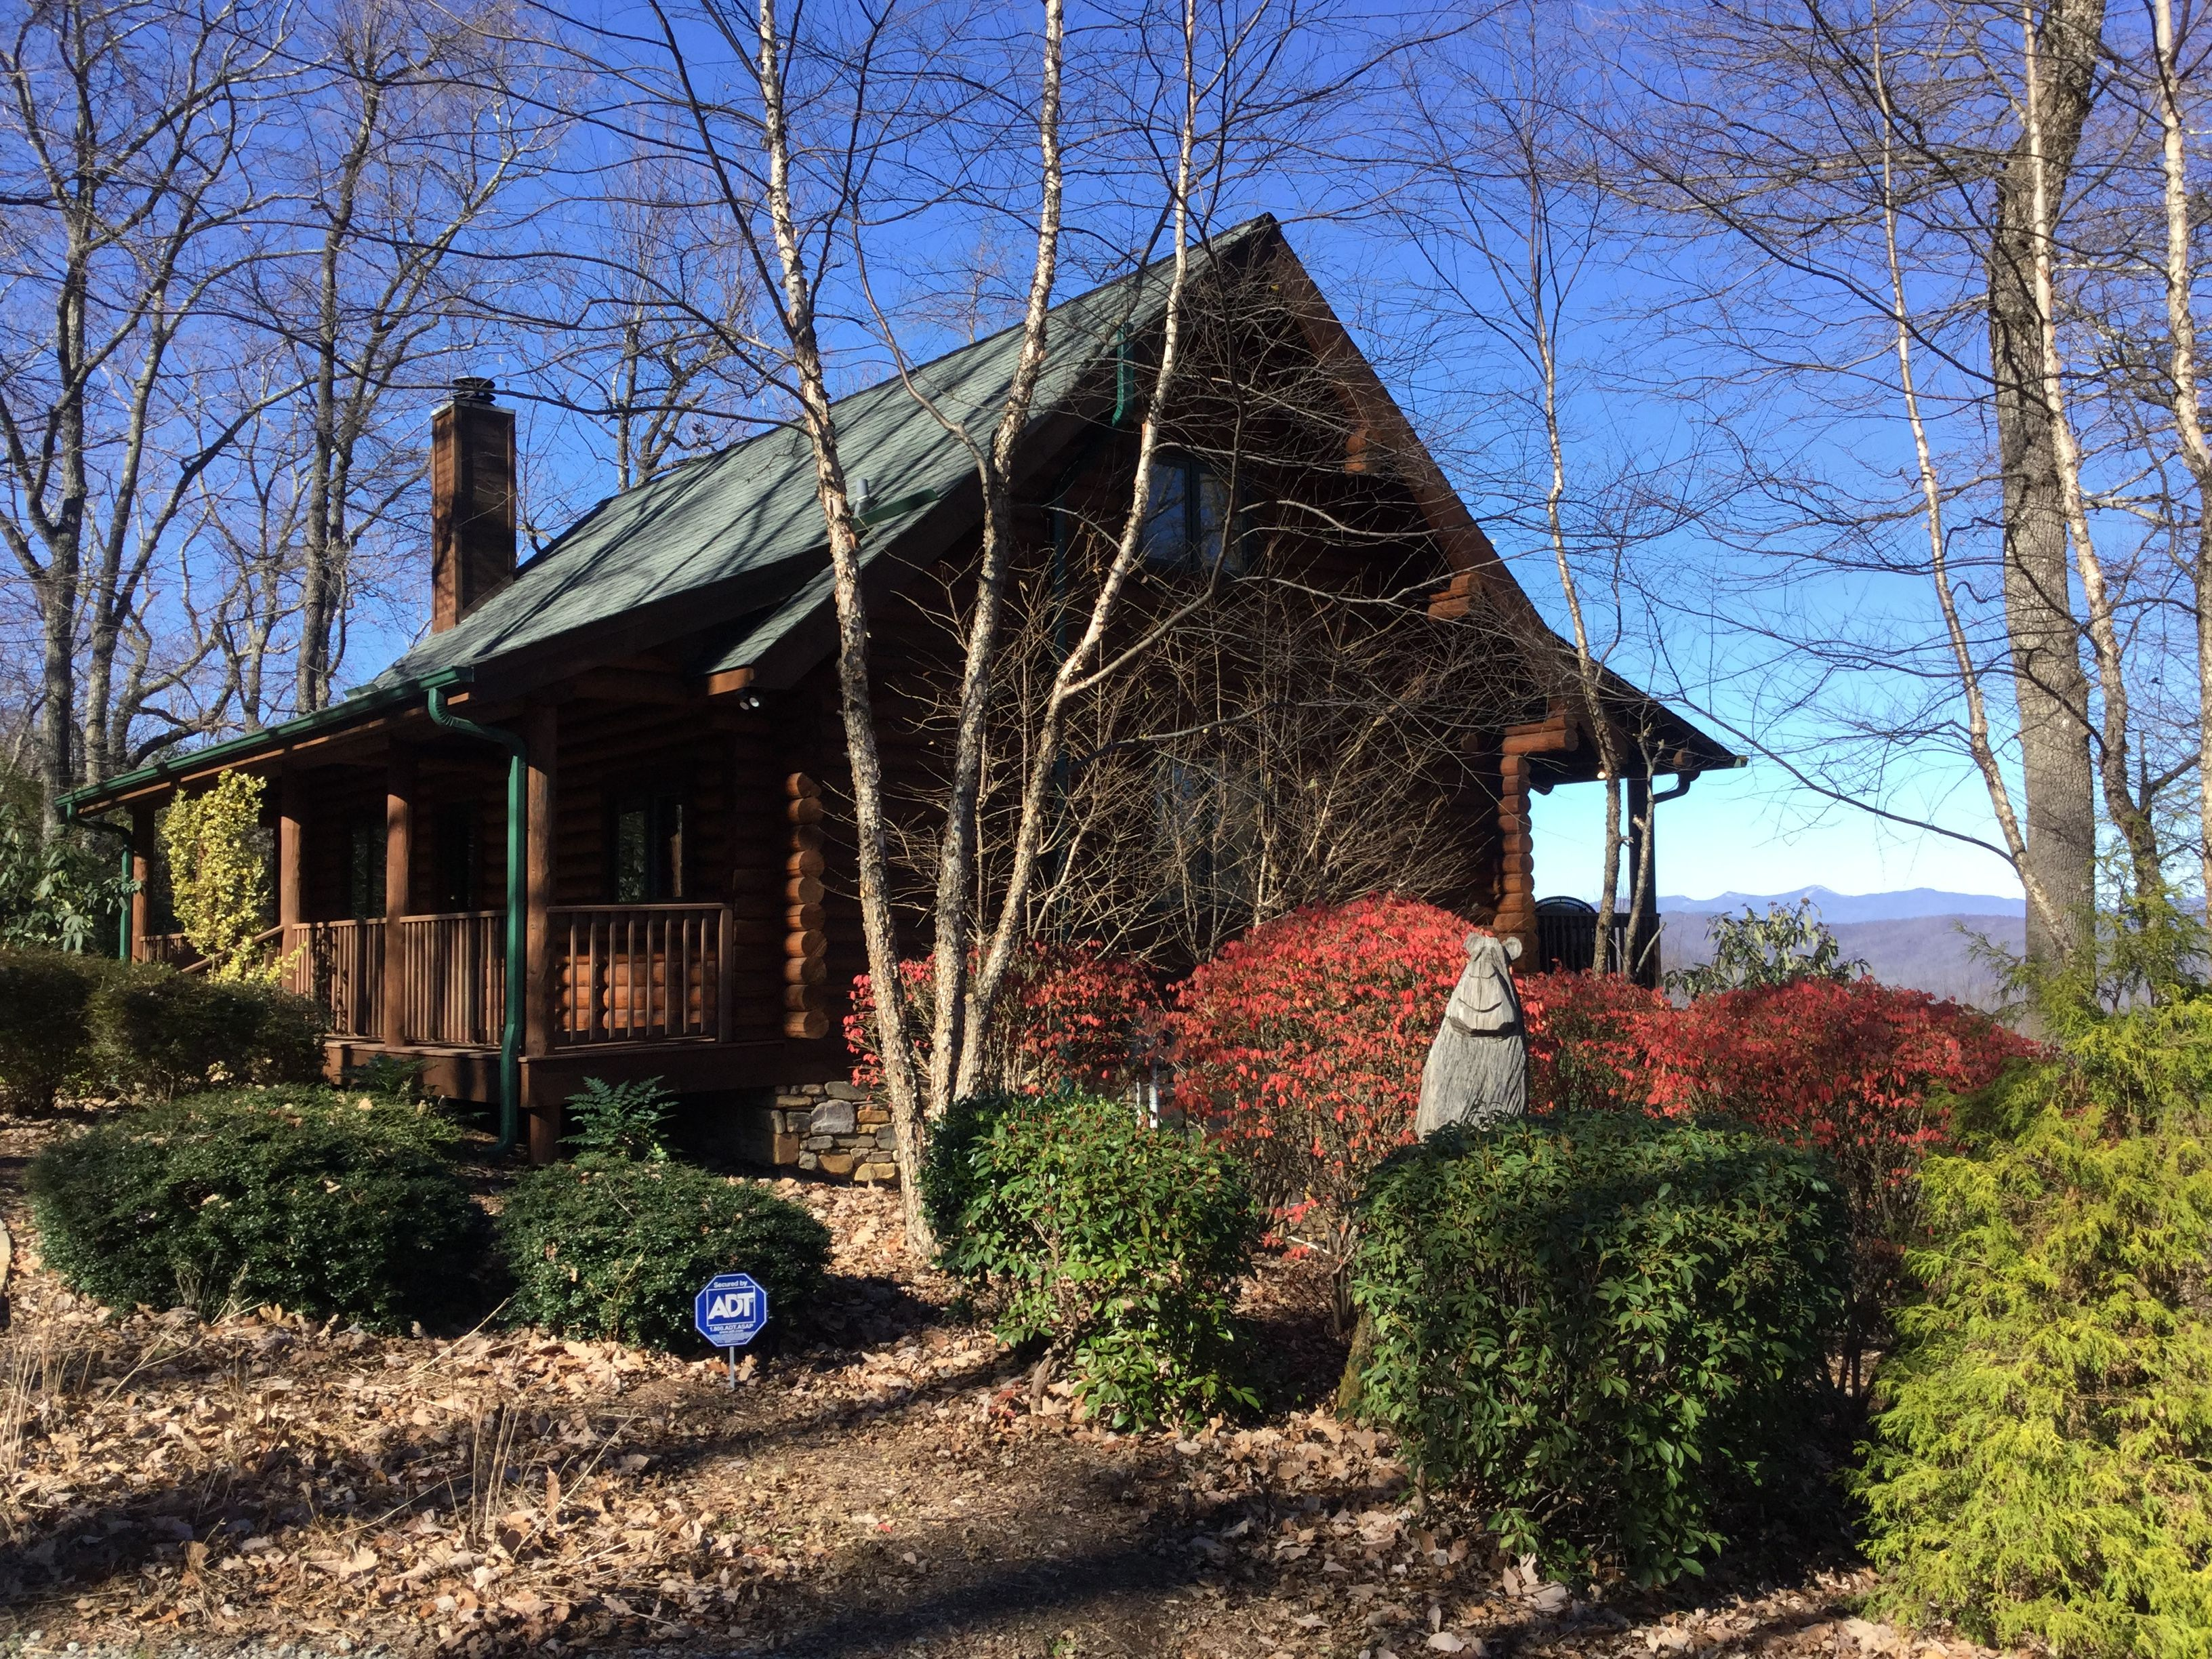 pocono mountain run deer black nc rentals vacation cabins